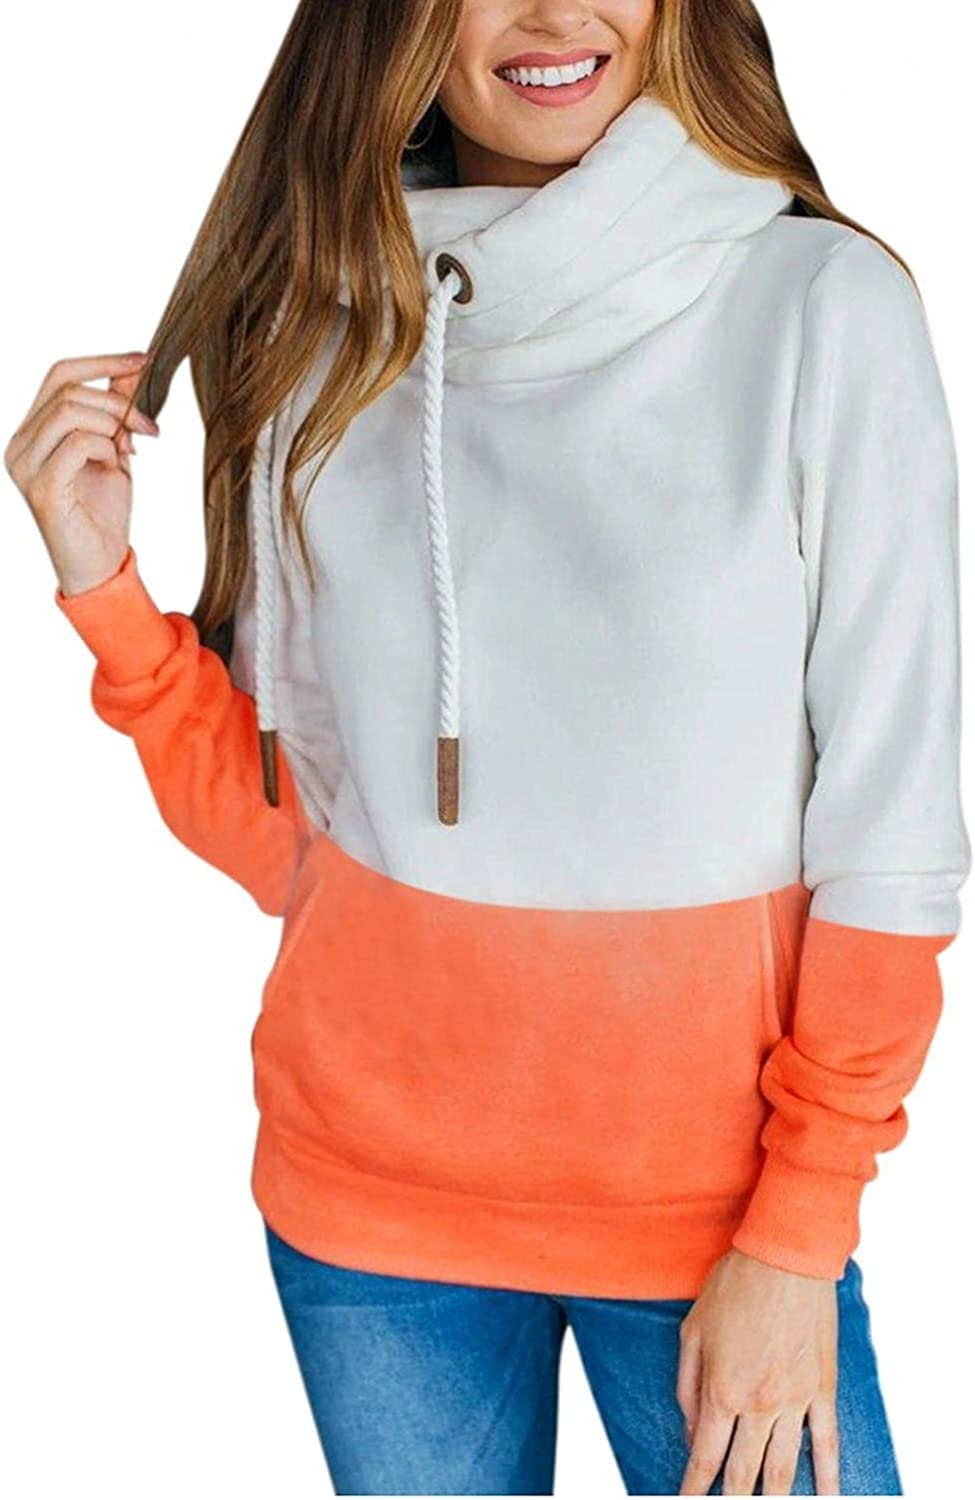 Hoodies for Women Pullover, Womens Fashion Hoodie Long Sleeve Pullover Sweatshirt Casual Color Contrast Tunic Blouse